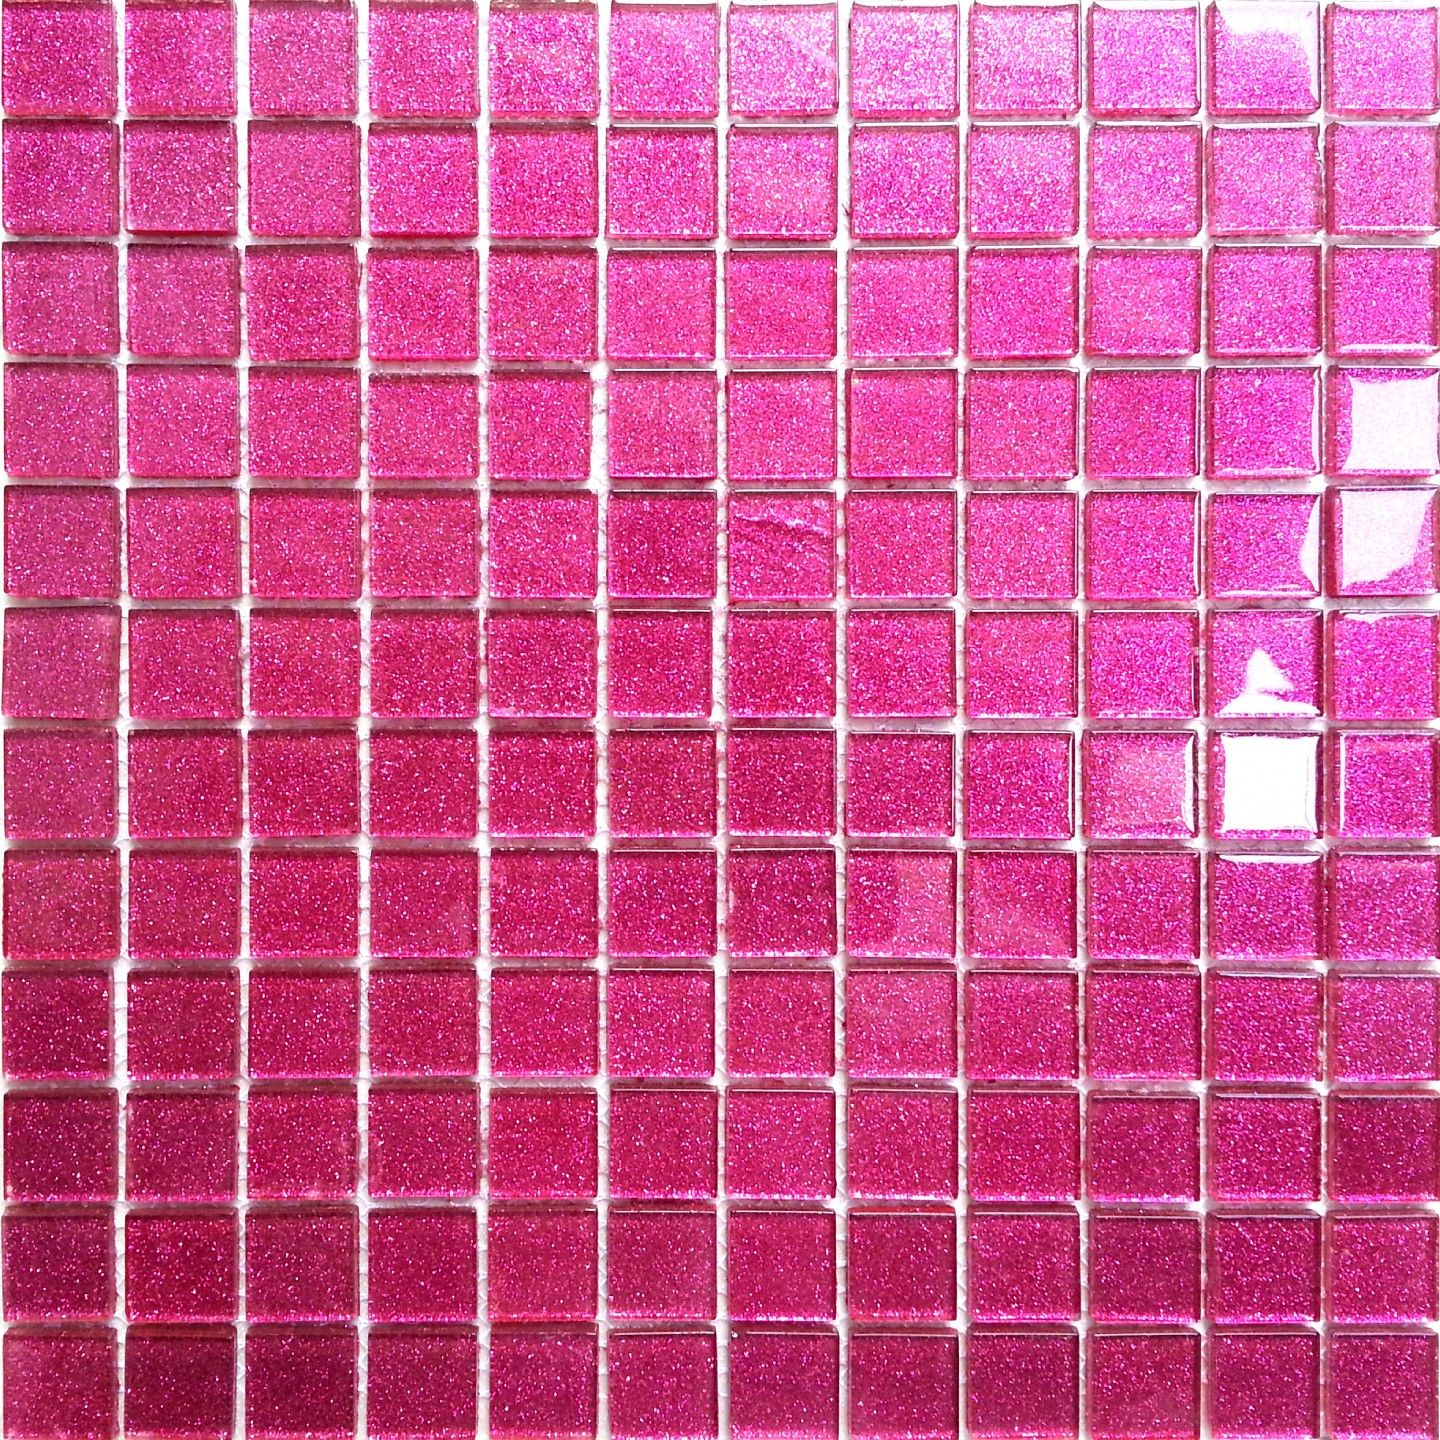 Glitter pink glass mosaic tiles on sale online MT0018 | Everything ...